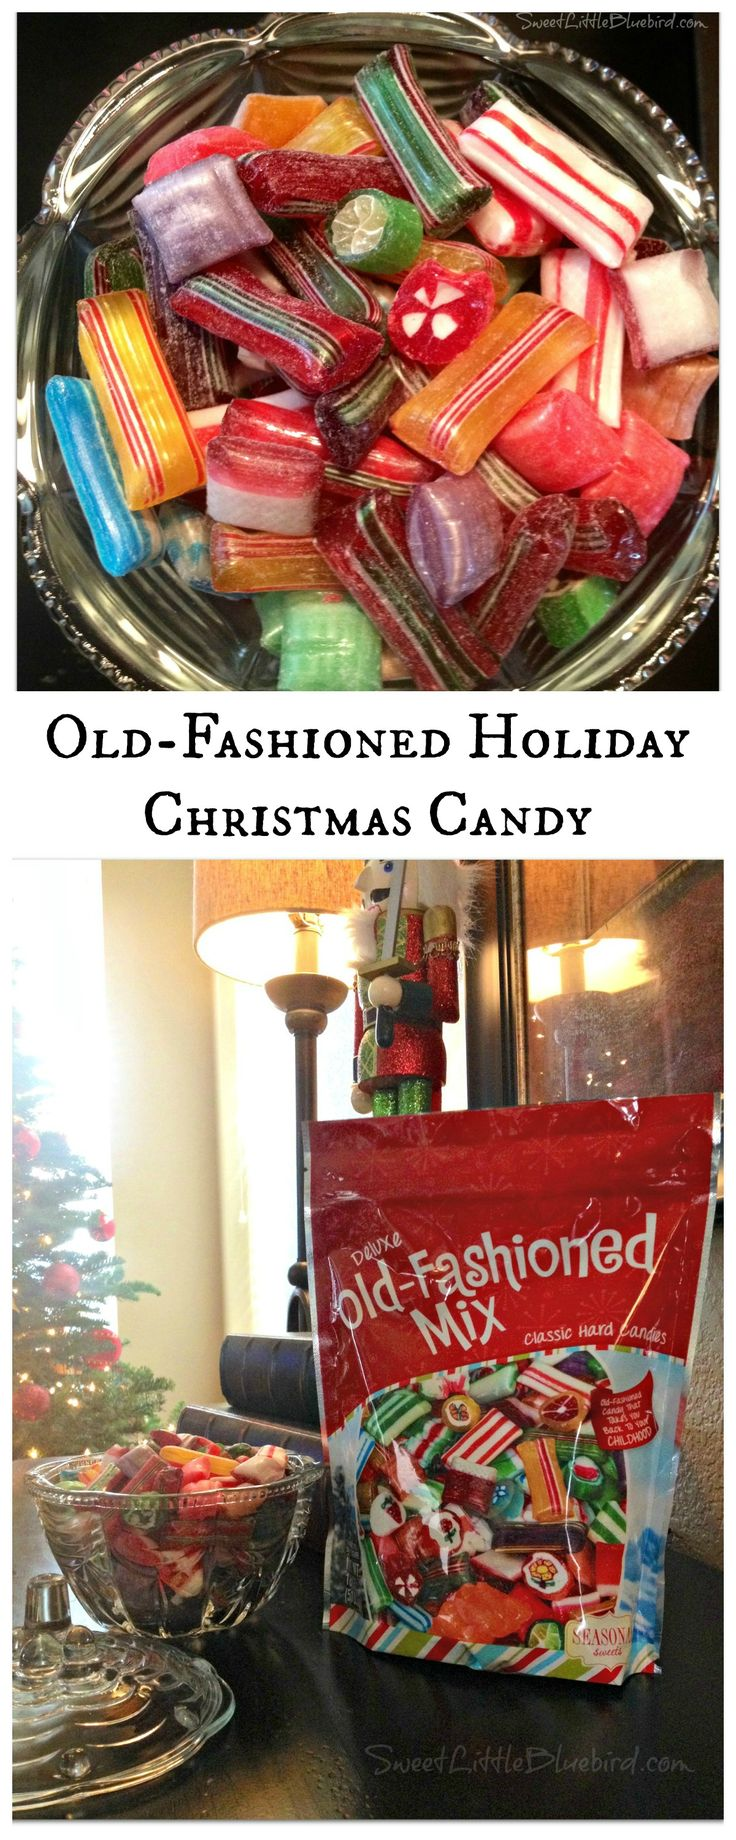 OLD-FASHIONED HOLIDAY CHRISTMAS CANDY - A must-have in the candy dish for our family during the holidays!  Find out where you can find them just in time for Christmas!  BRACH'S brand and more...| SweetLittleBluebird.com